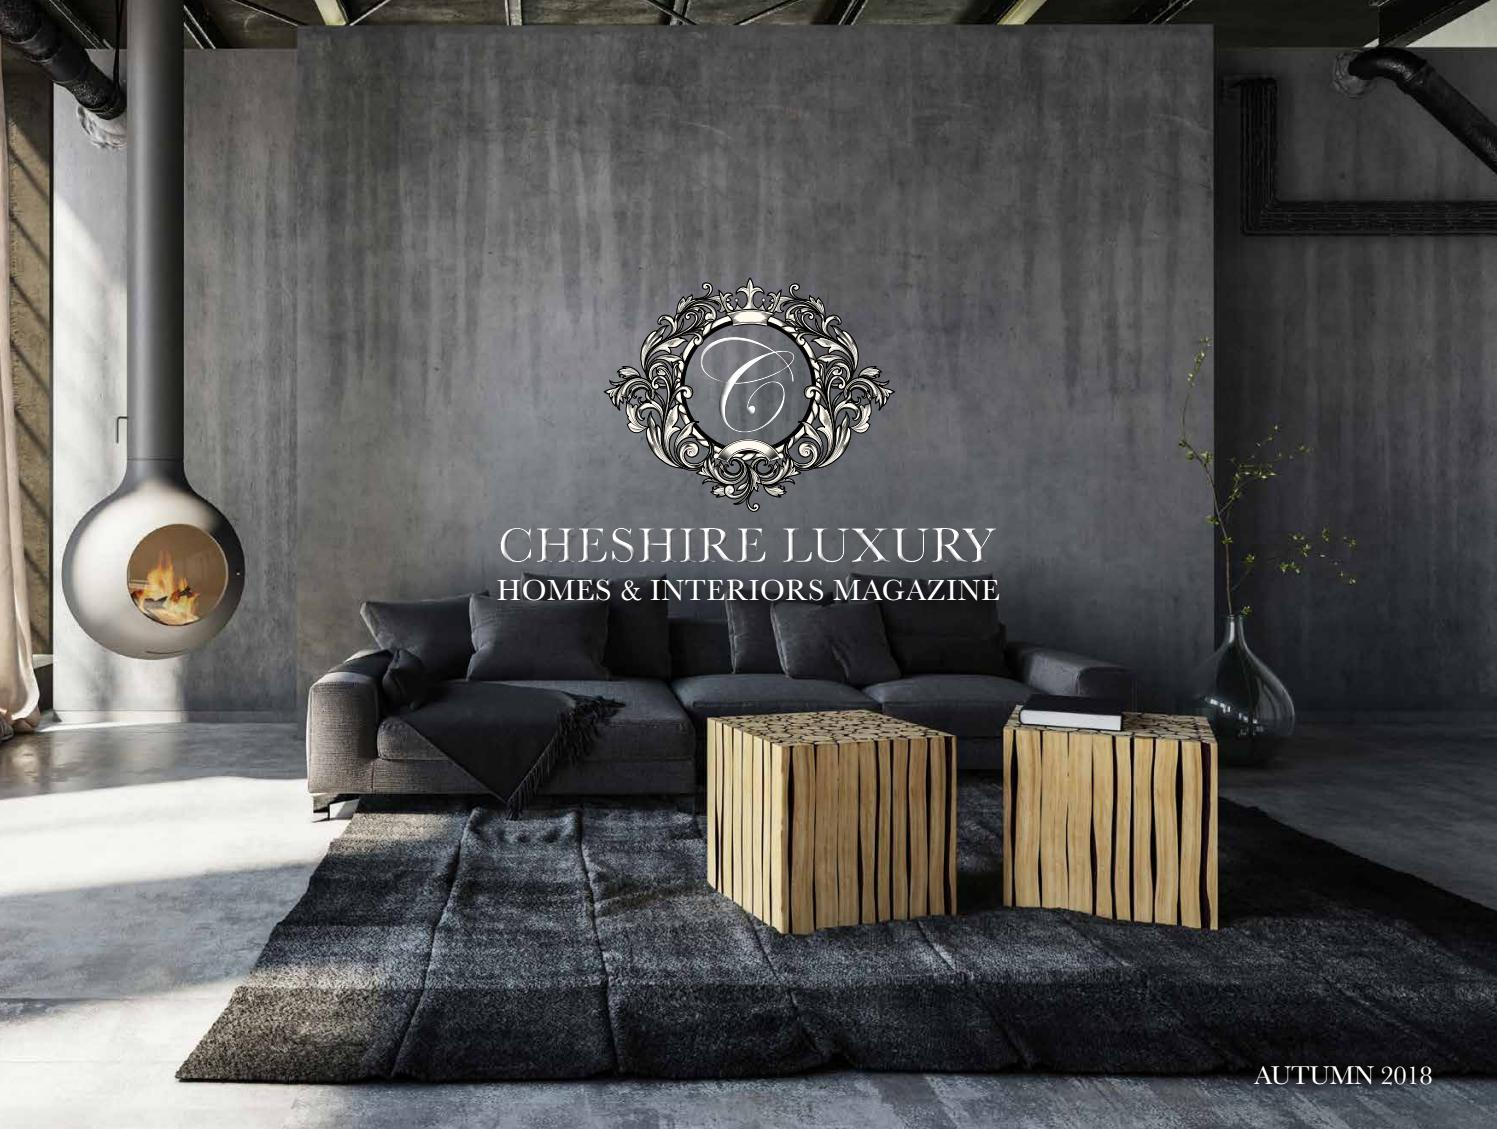 Bagno Design Redbrick Mill Cheshire Luxury Homes Interiors Magazine Autumn 2018 By Luxury